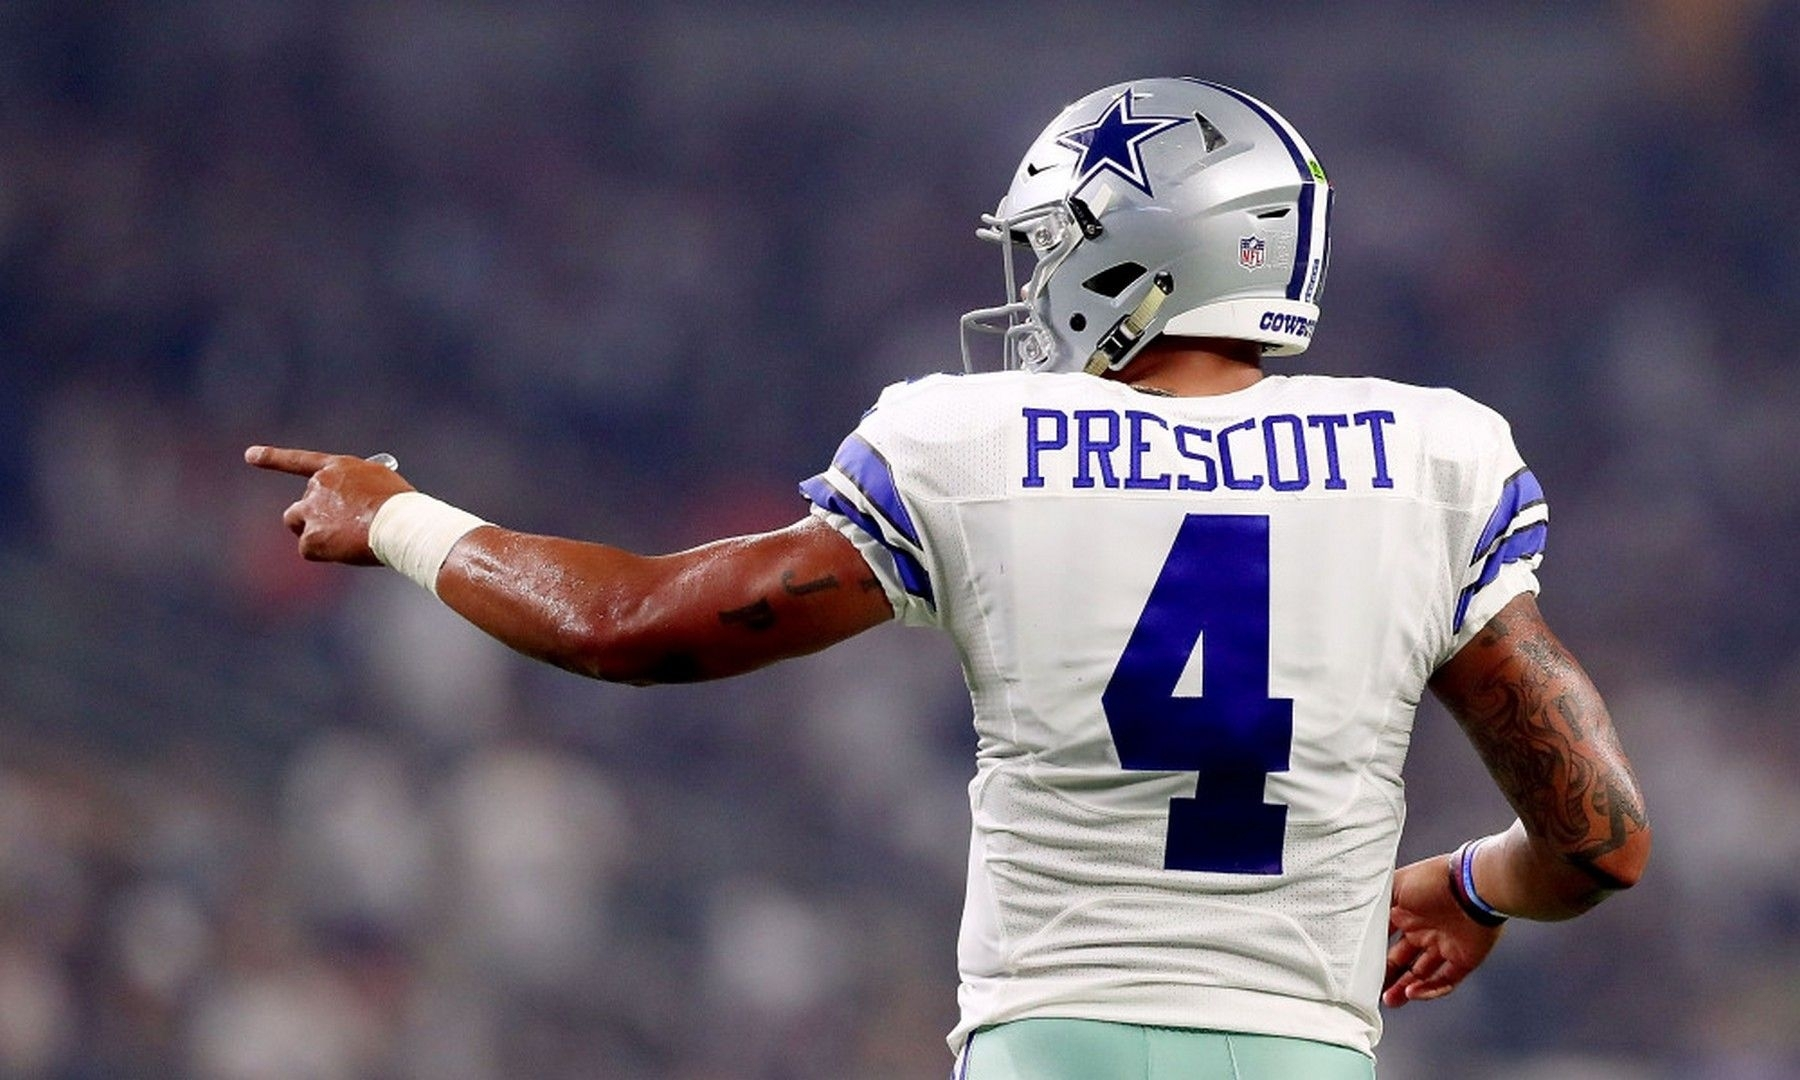 dak prescott wallpaper free | dak prescott wallpapers hd | pinterest